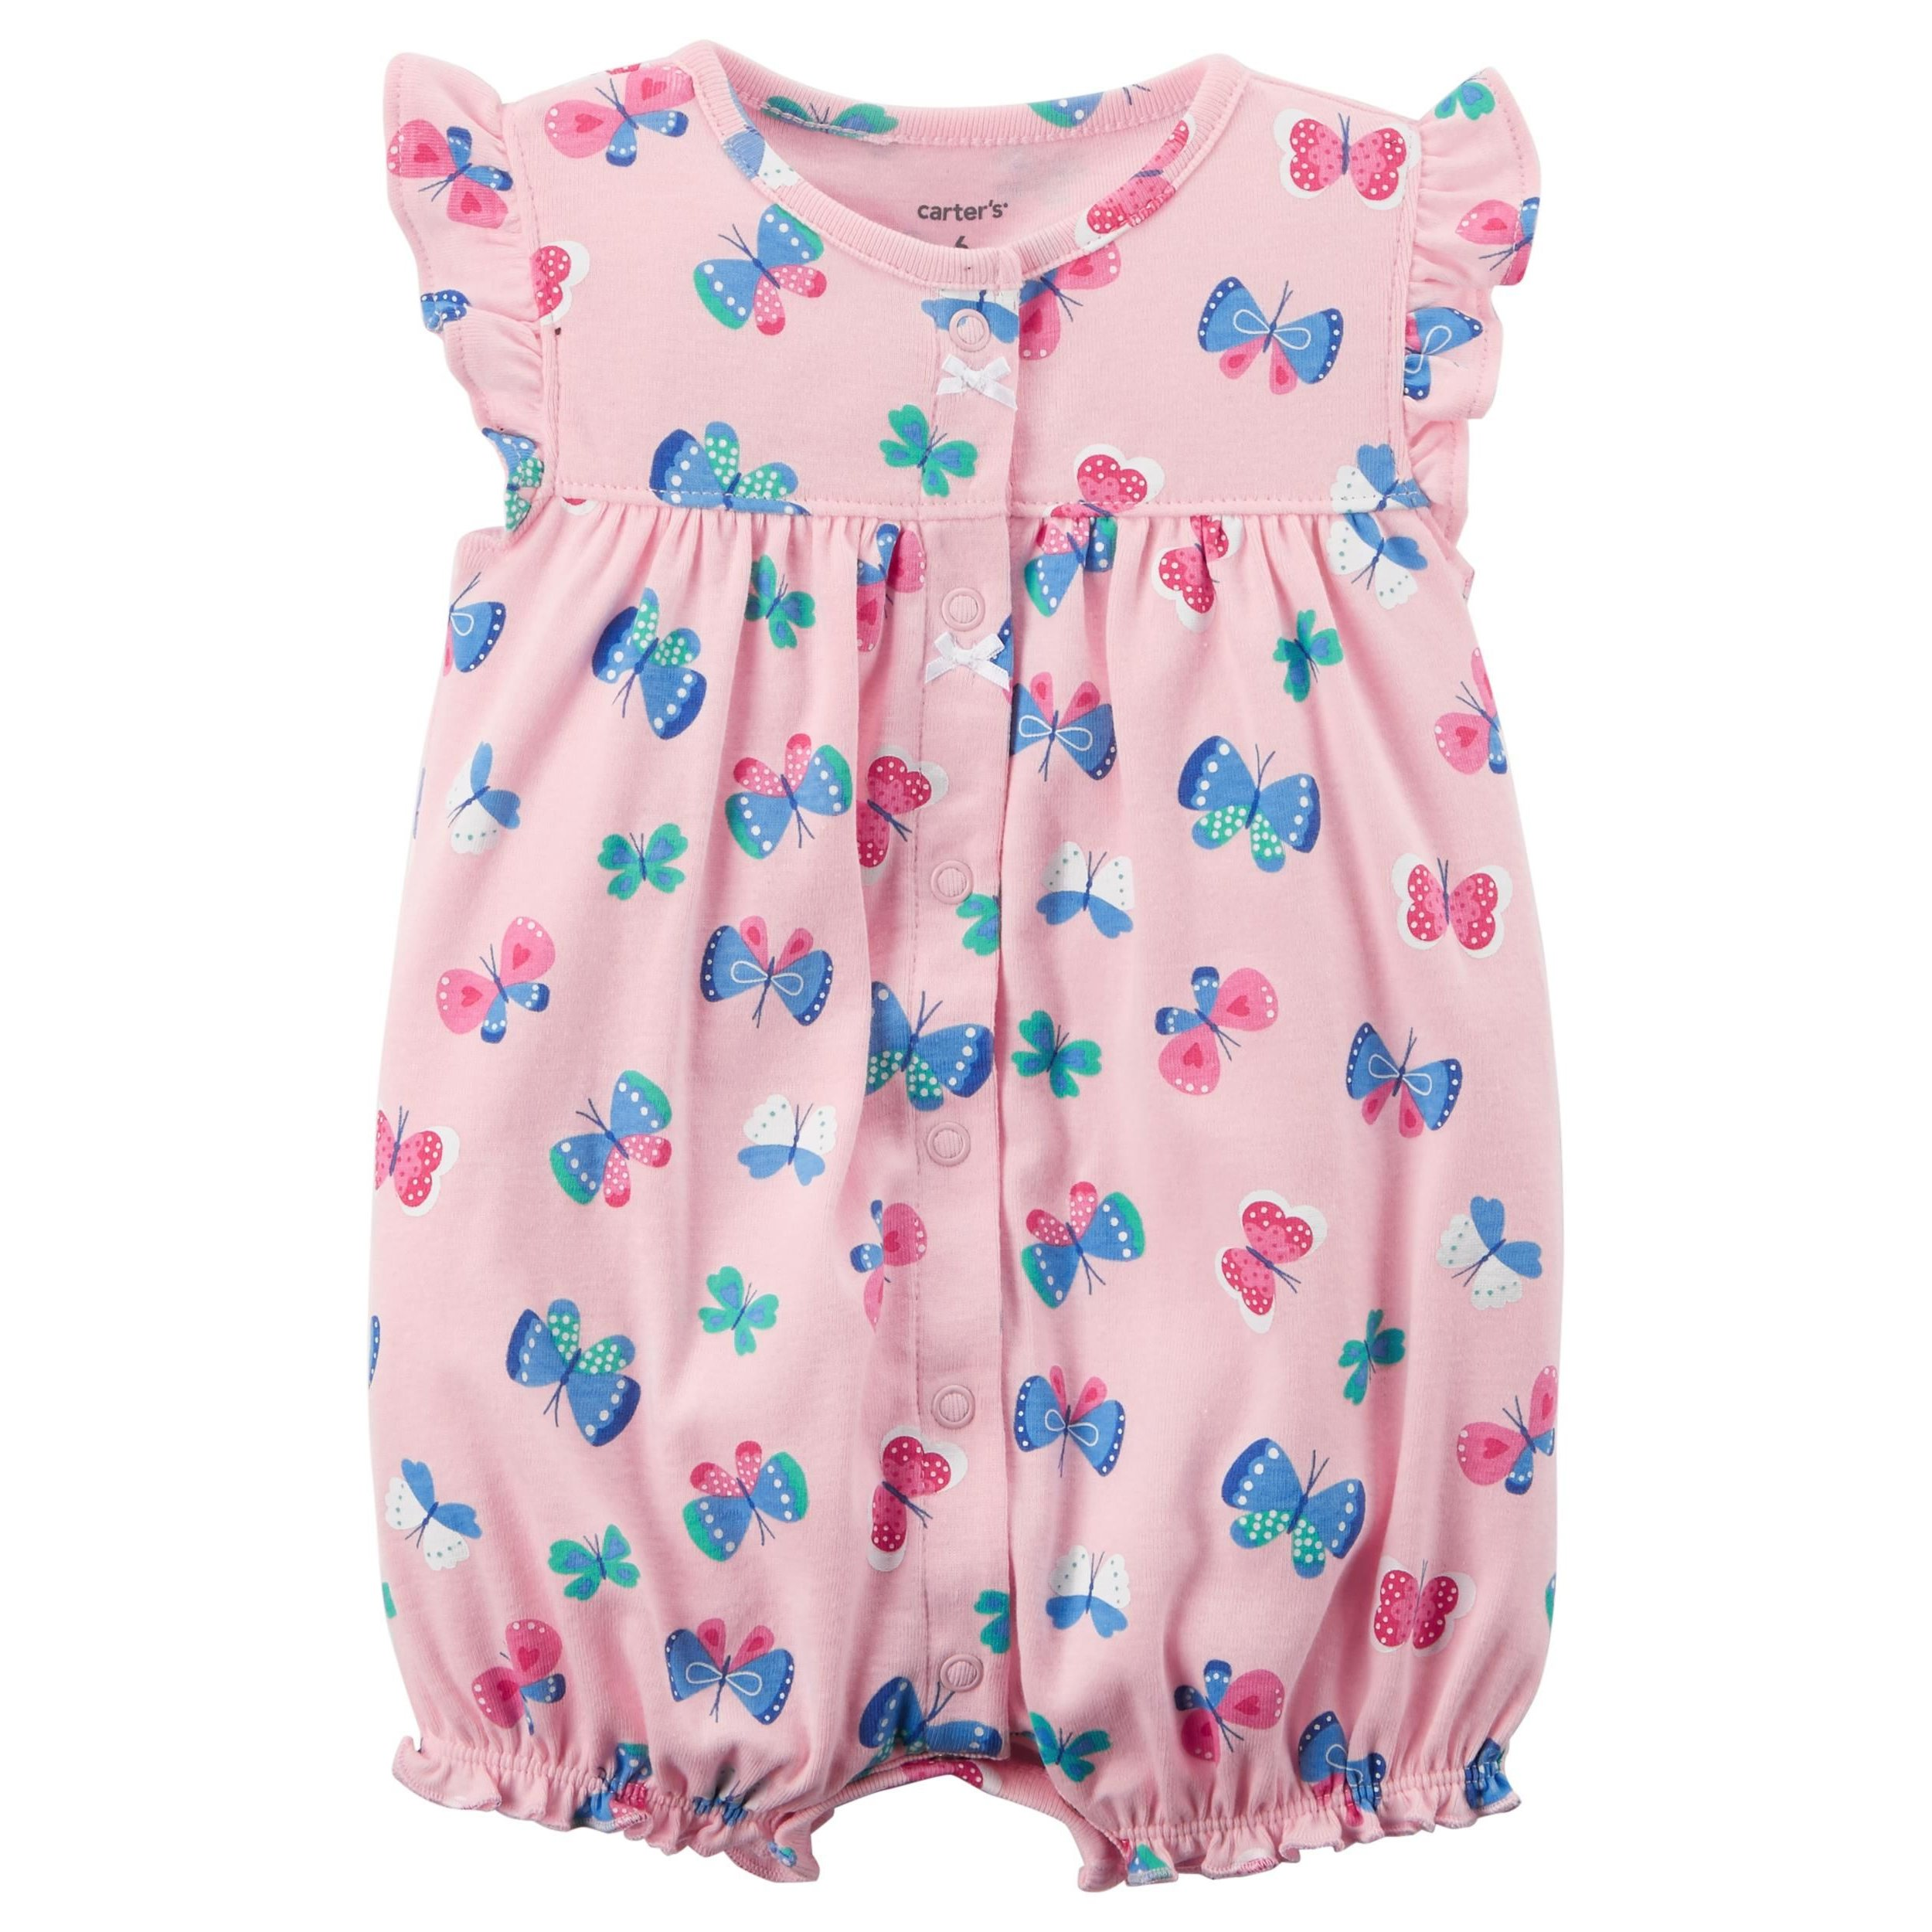 a7a0bfb7a14 Galleon - Carter s Baby Girls  Butterfly Snap Up Romper 24 Months